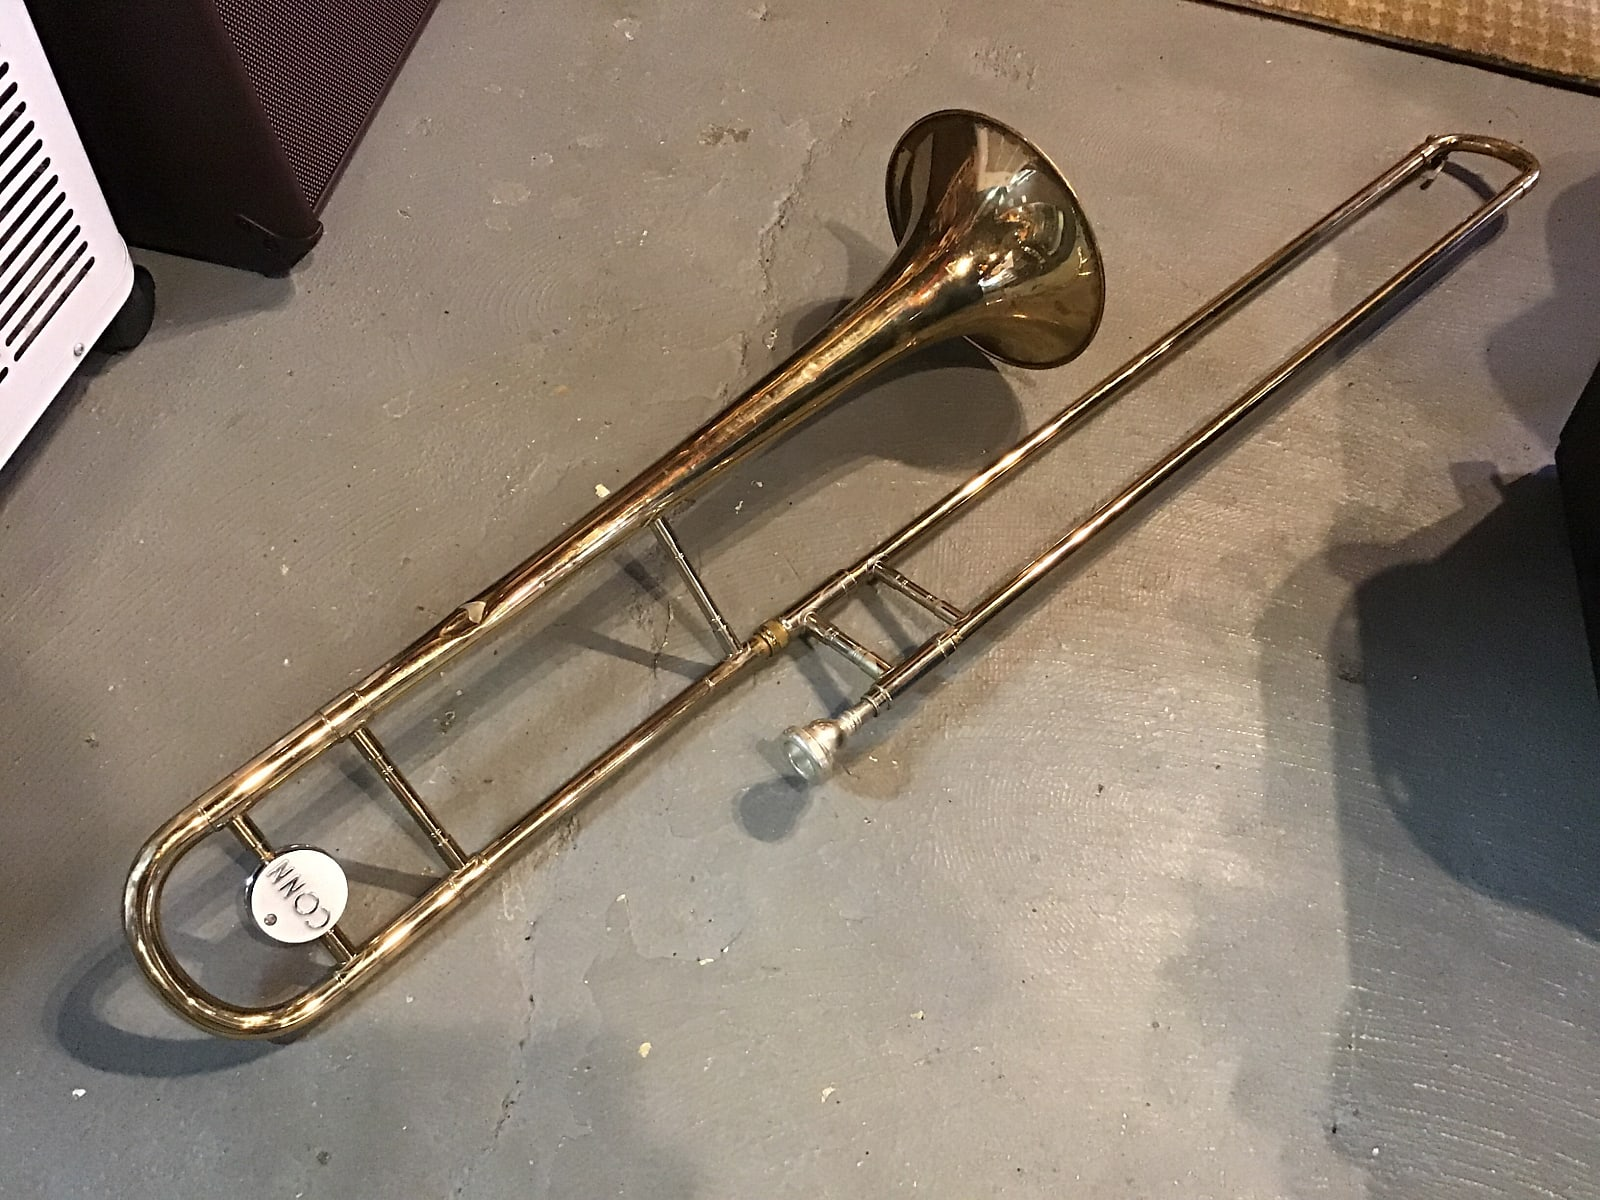 Conn Director Vintage Trombone w/ Case and Mouthpiece